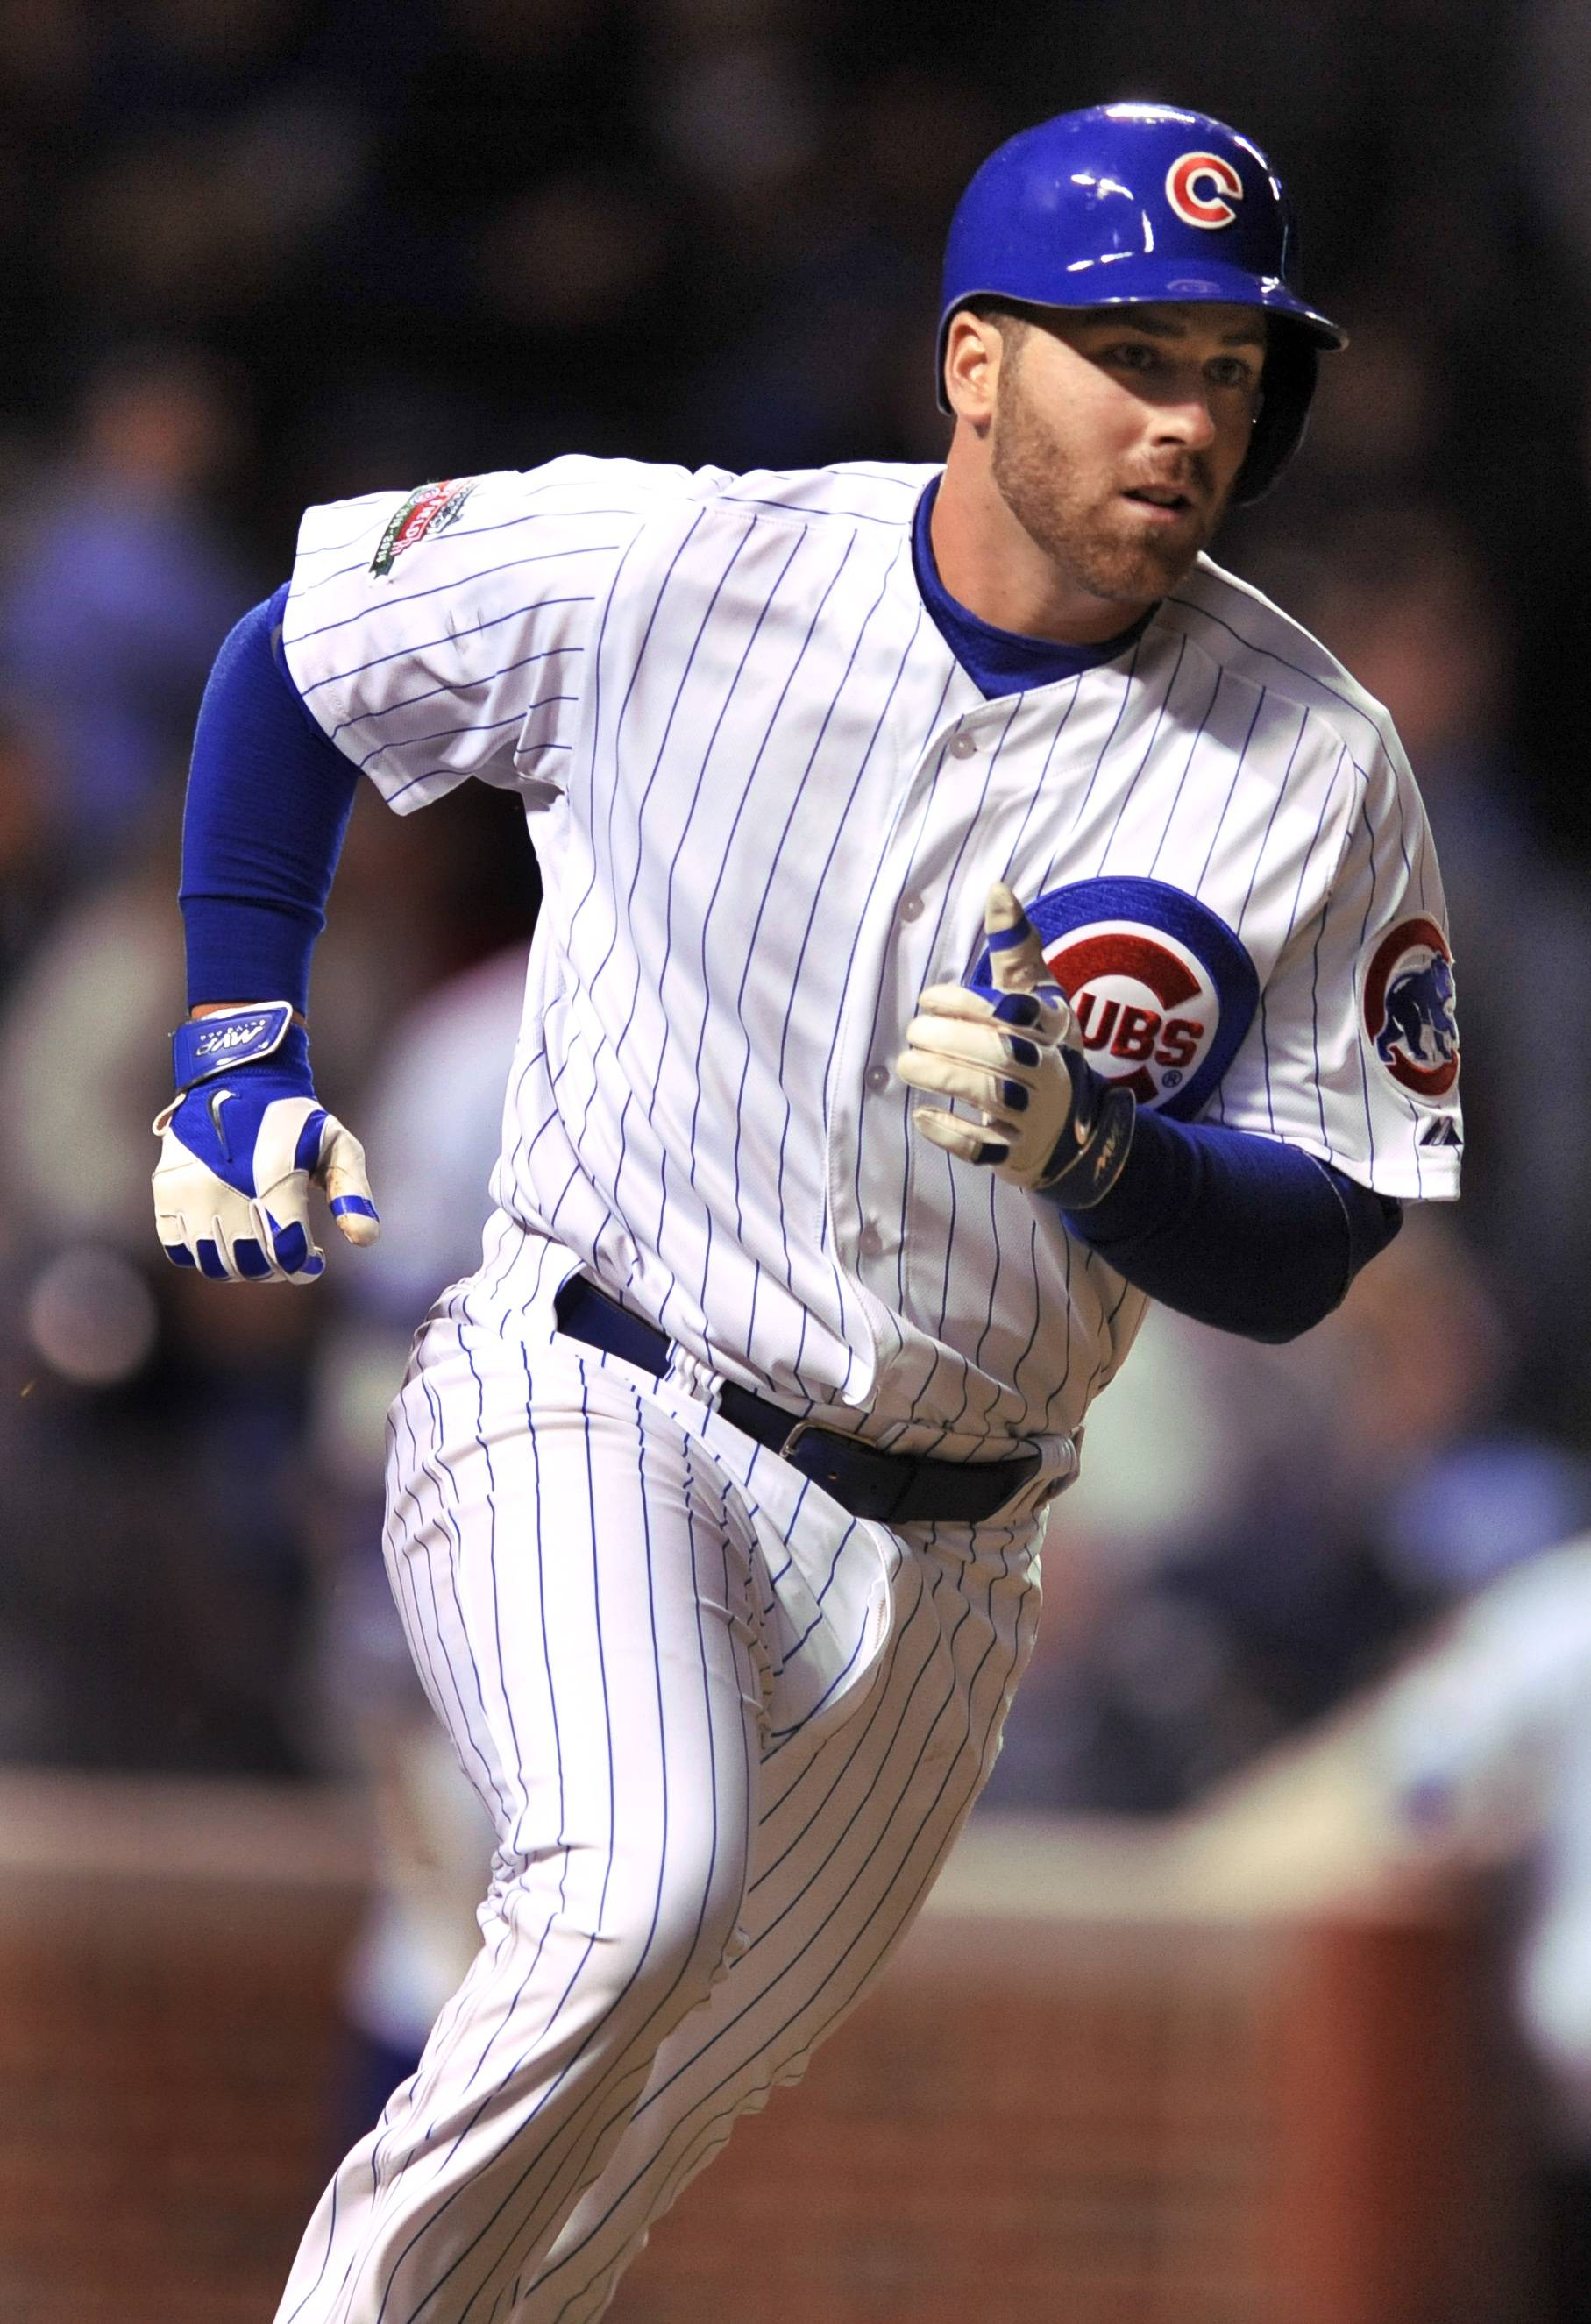 Mike Olt gives the Cubs the lead for good with a 2-run homer in the fifth inning Wednesday night.